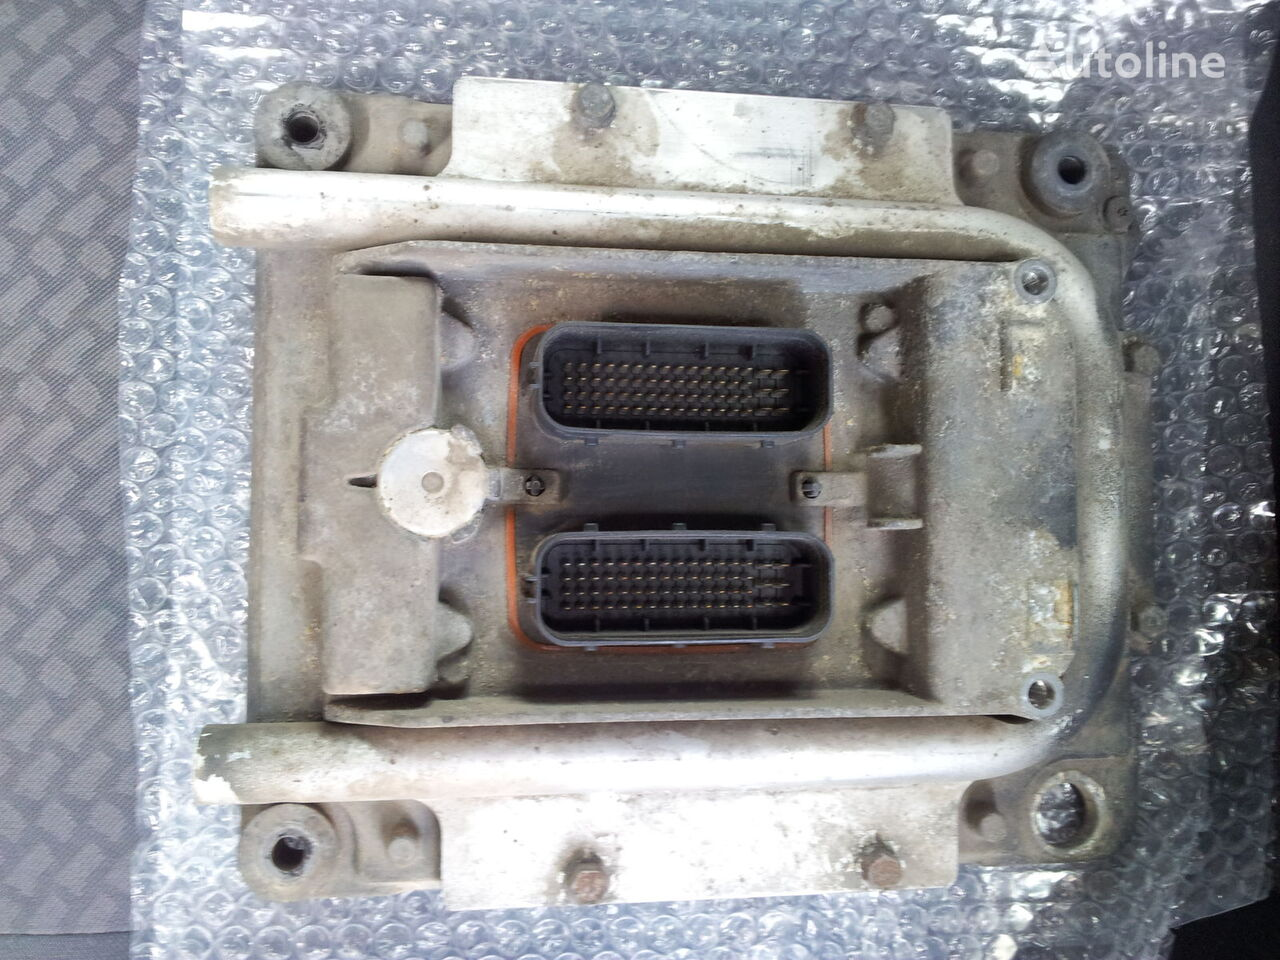 блок за управление RENAULT VOLVO FH13, ECU control unit, 440PS, engine control unit, 205612 за влекач RENAULT Premium DXI